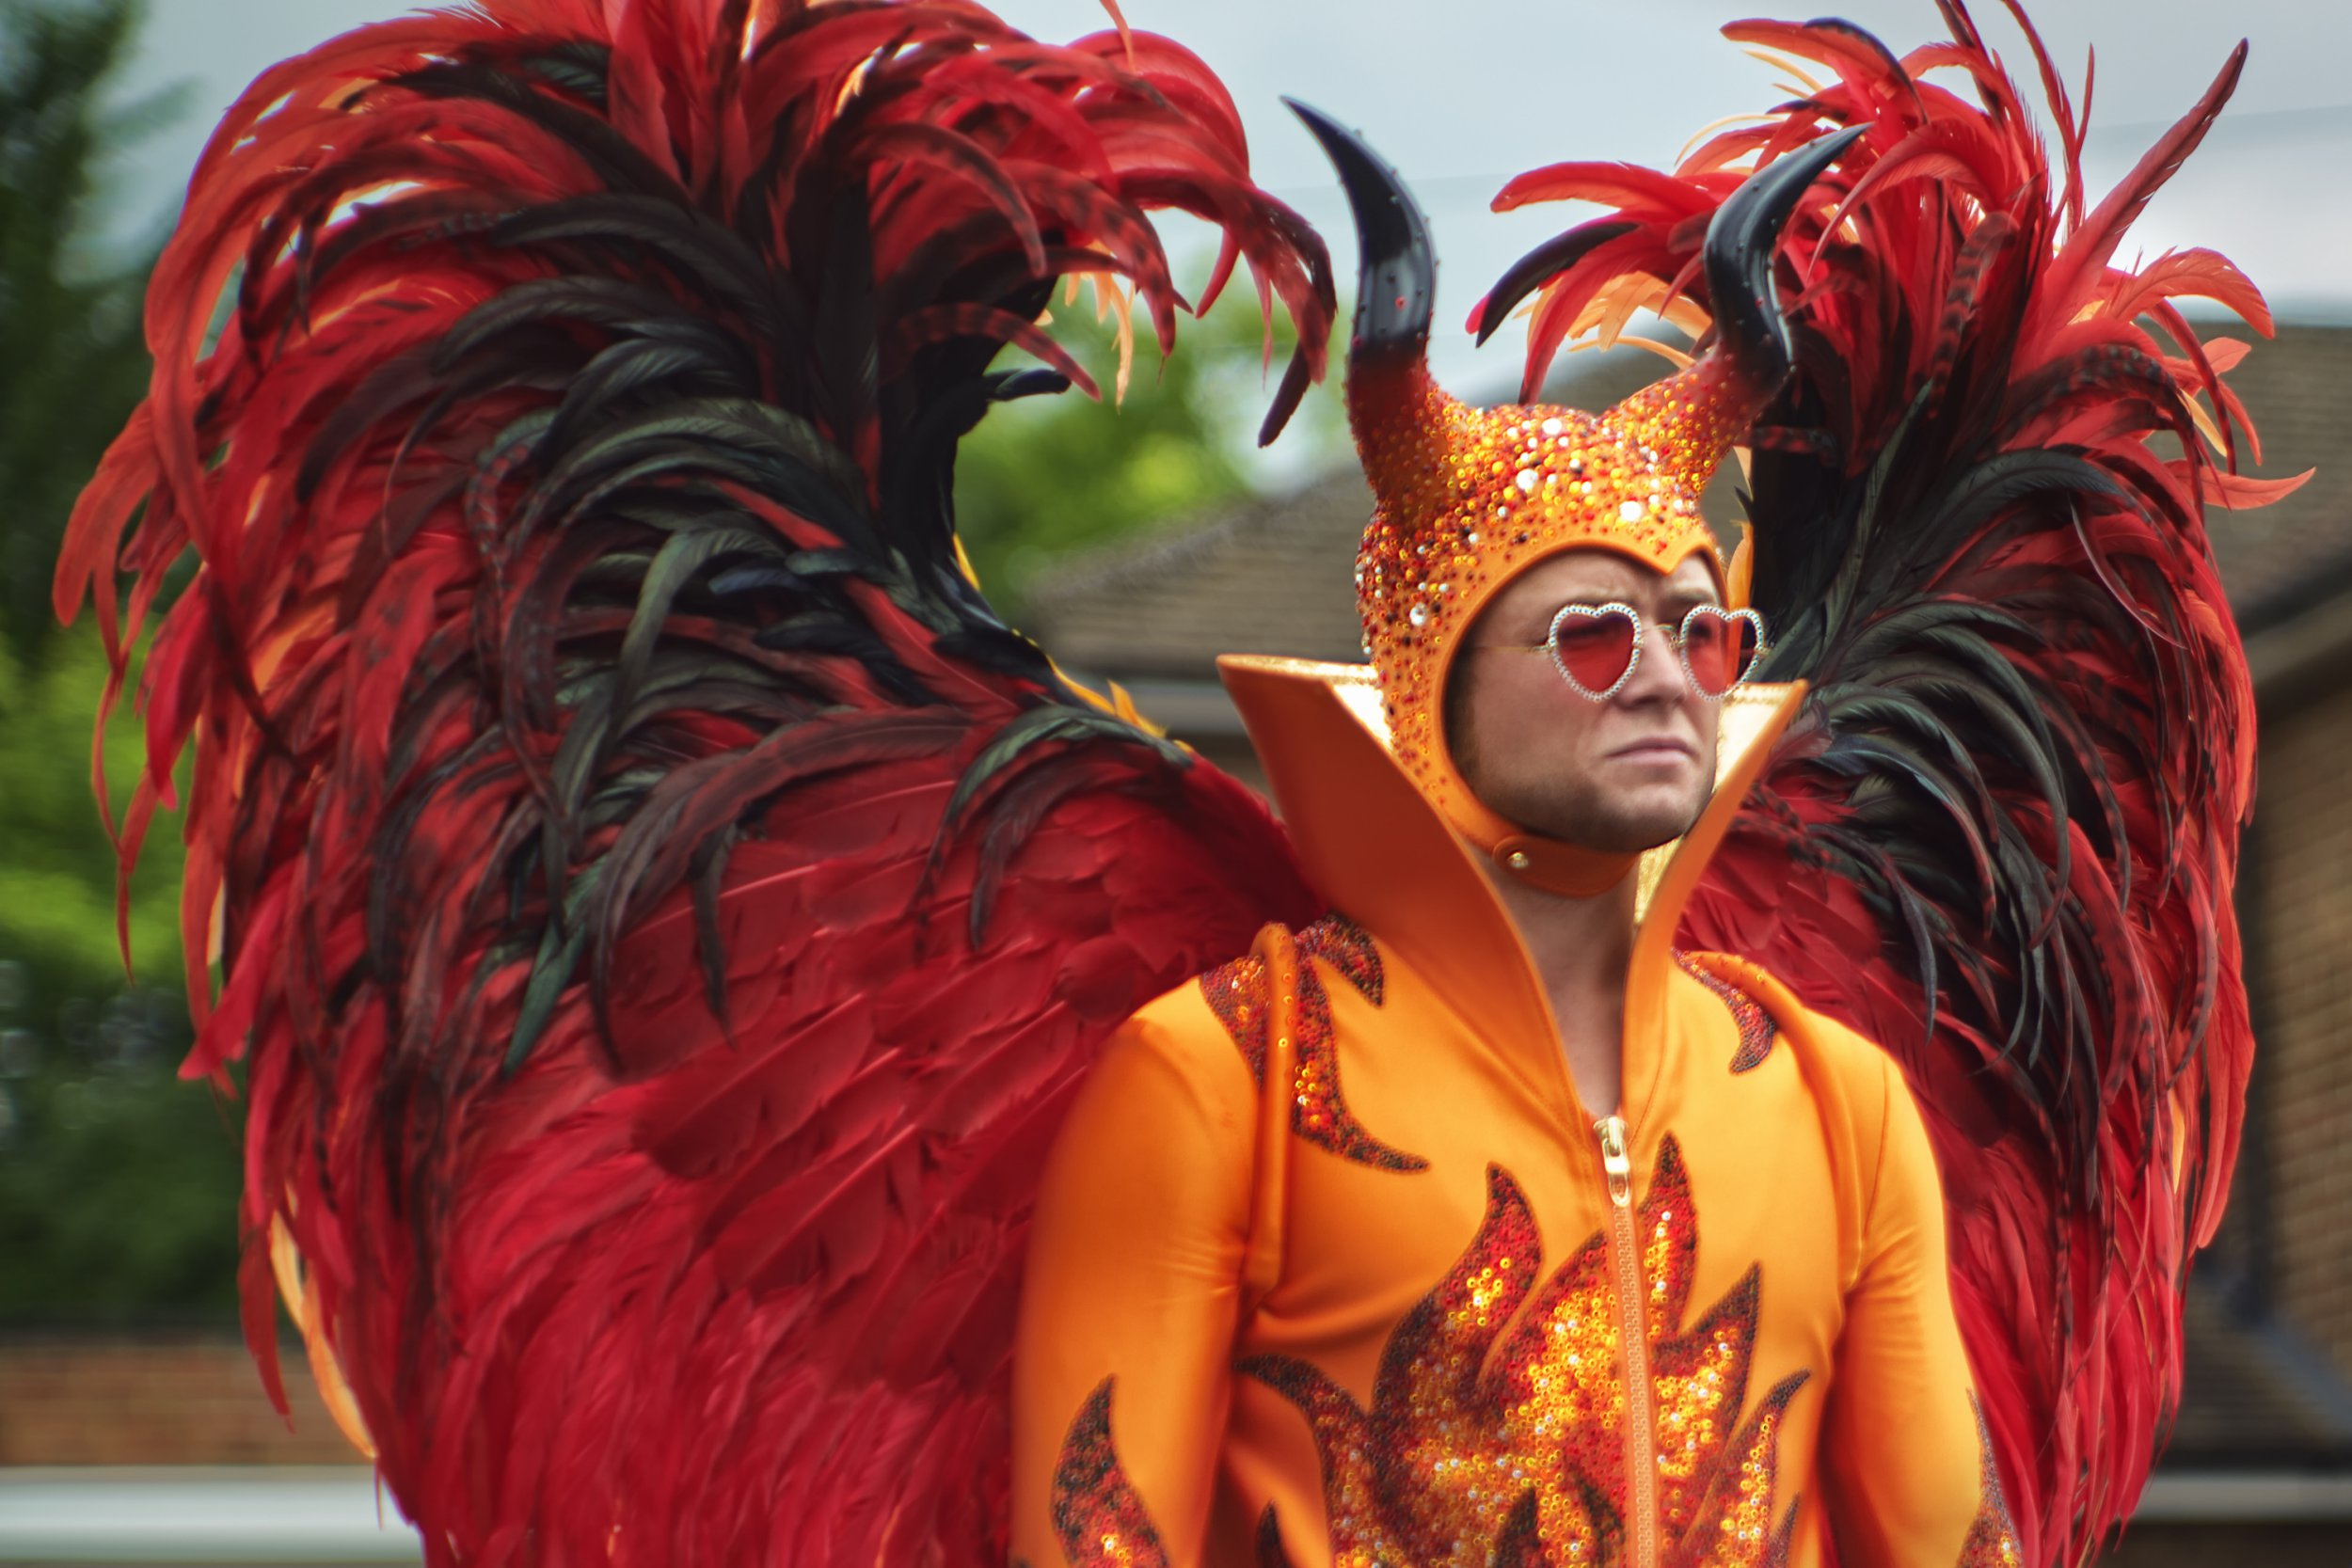 Rocketman sex and drugs scenes almost left out for PG-13 rating – but Elton John 'didn't have PG-13 life'